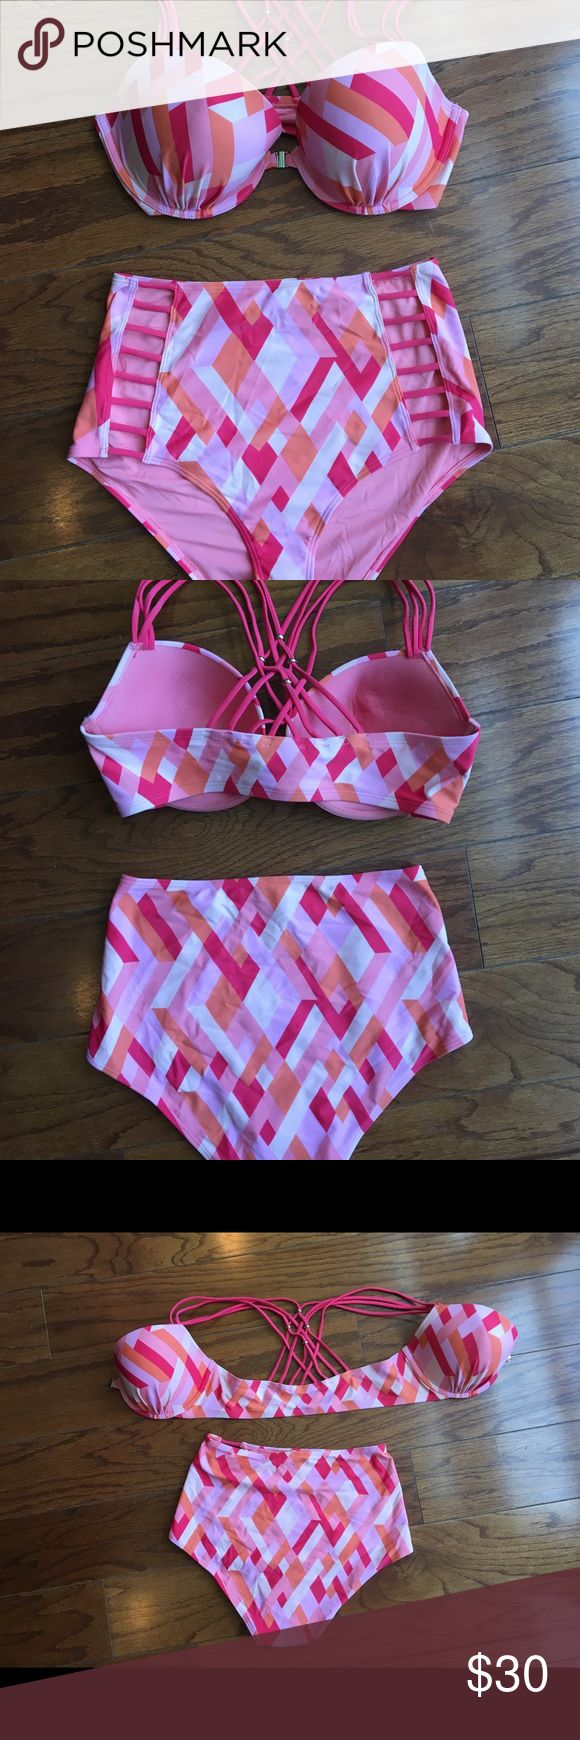 Brand new bikini from American Eagle. Size L/36D Brand new high waisted bikini from American Eagle. The high waisted bottom has sexy cutouts along the hips and is a size L, the underwire, padded top has multiple crisscross straps in the back held together by silver beads. The bikini top is front closure making it easy to put on and take off as well as adding more support for the girls! It's super cute and flattering! American Eagle Outfitters Swim Bikinis